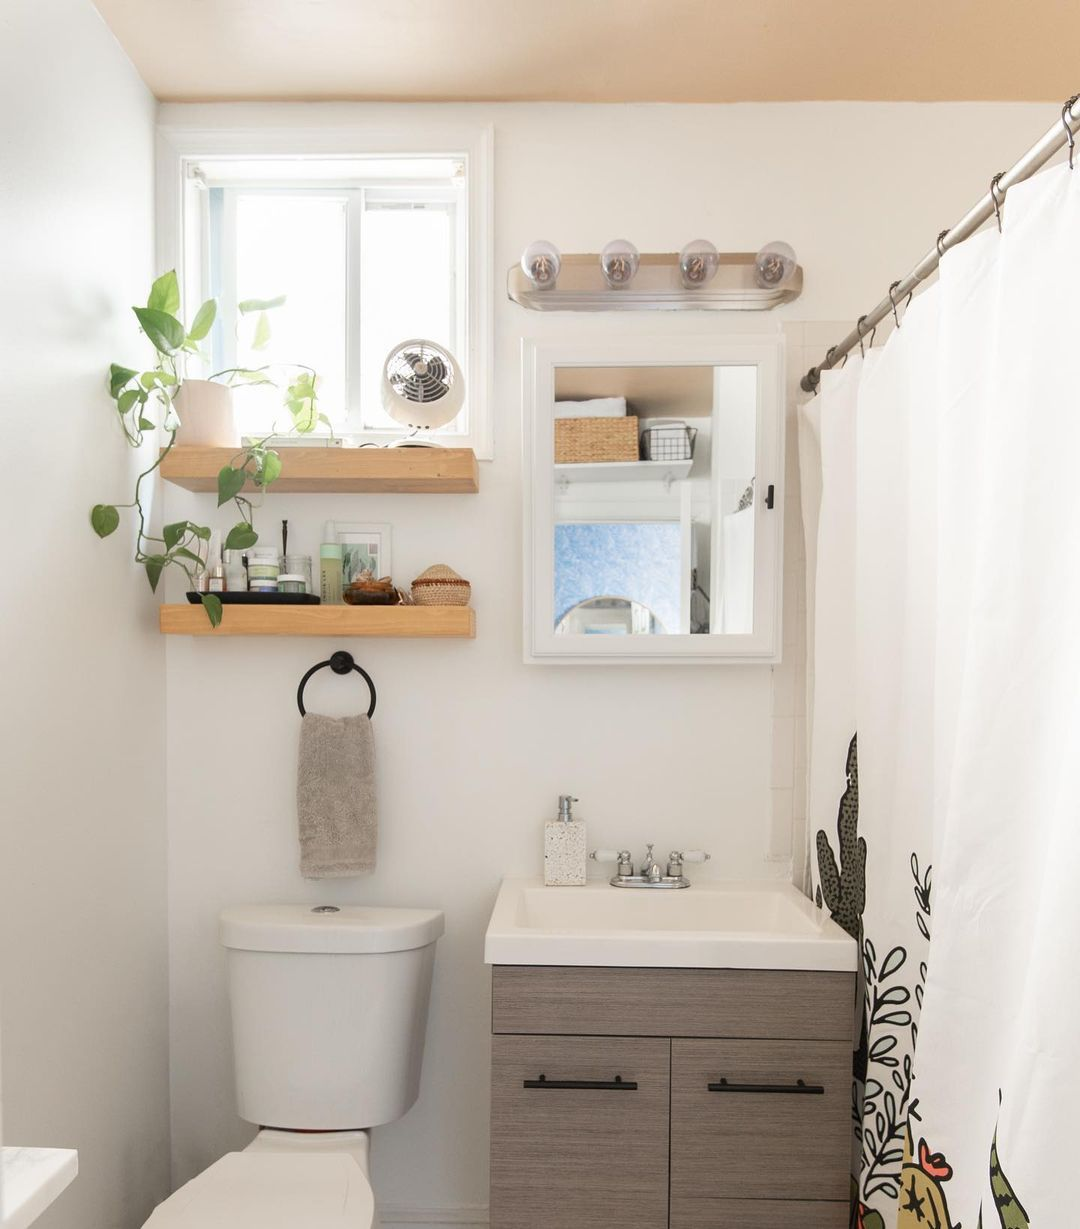 bathroom with painted ceiling, open shelving and plants